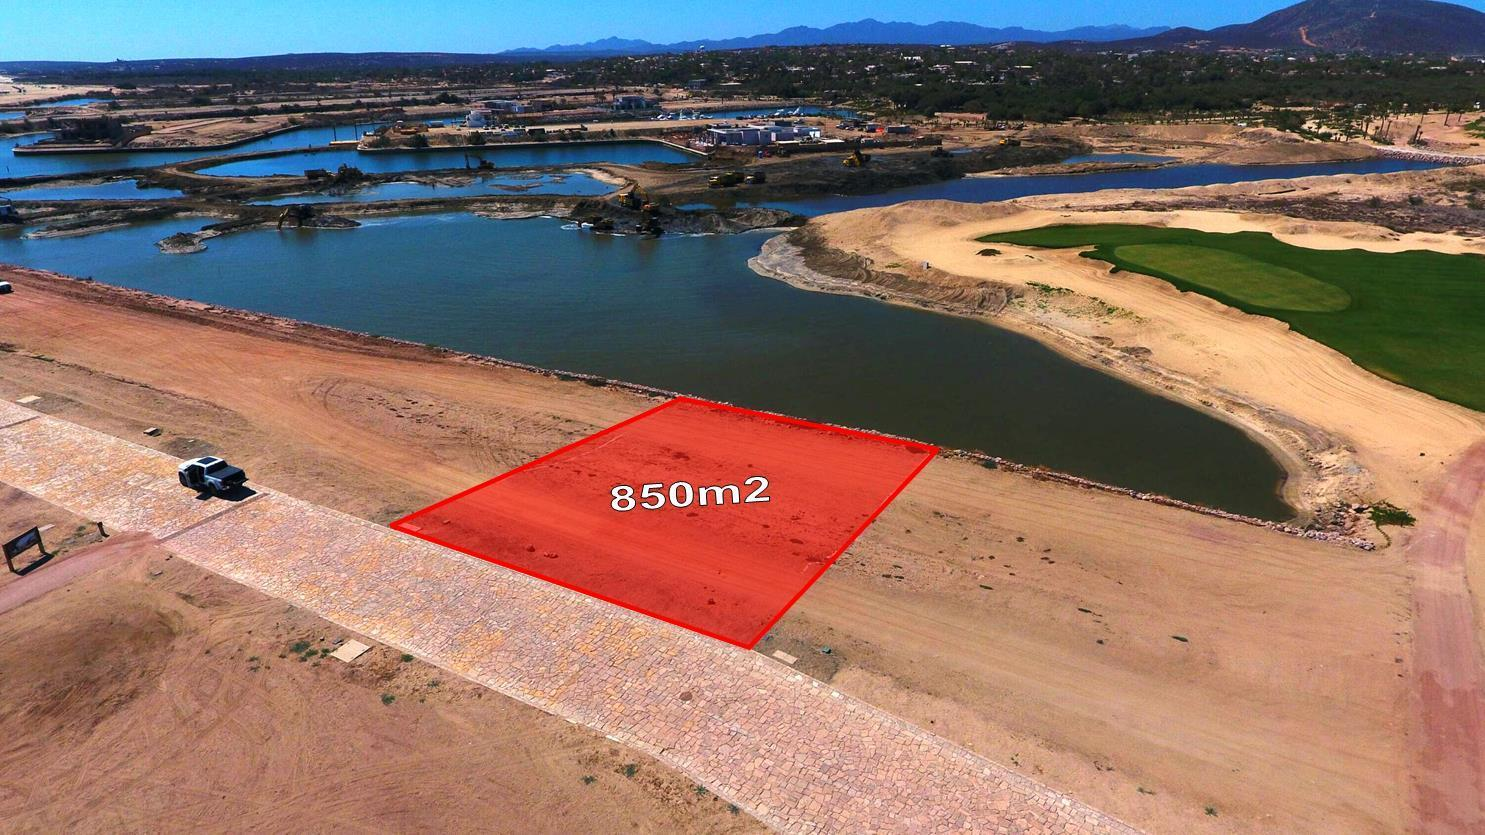 RARE RARE RARE....COSTA PALMAS MARINA LOT. Dock you yacht in your back yard!  850 sq mt flat lot with beautiful granite cobble stone roads. What an amazing opportunity to have a beautiful golf course right across the channel from you and having your yacht docked in between. These lots dont come around often and so this one wont last long. Ready to build your dream home?